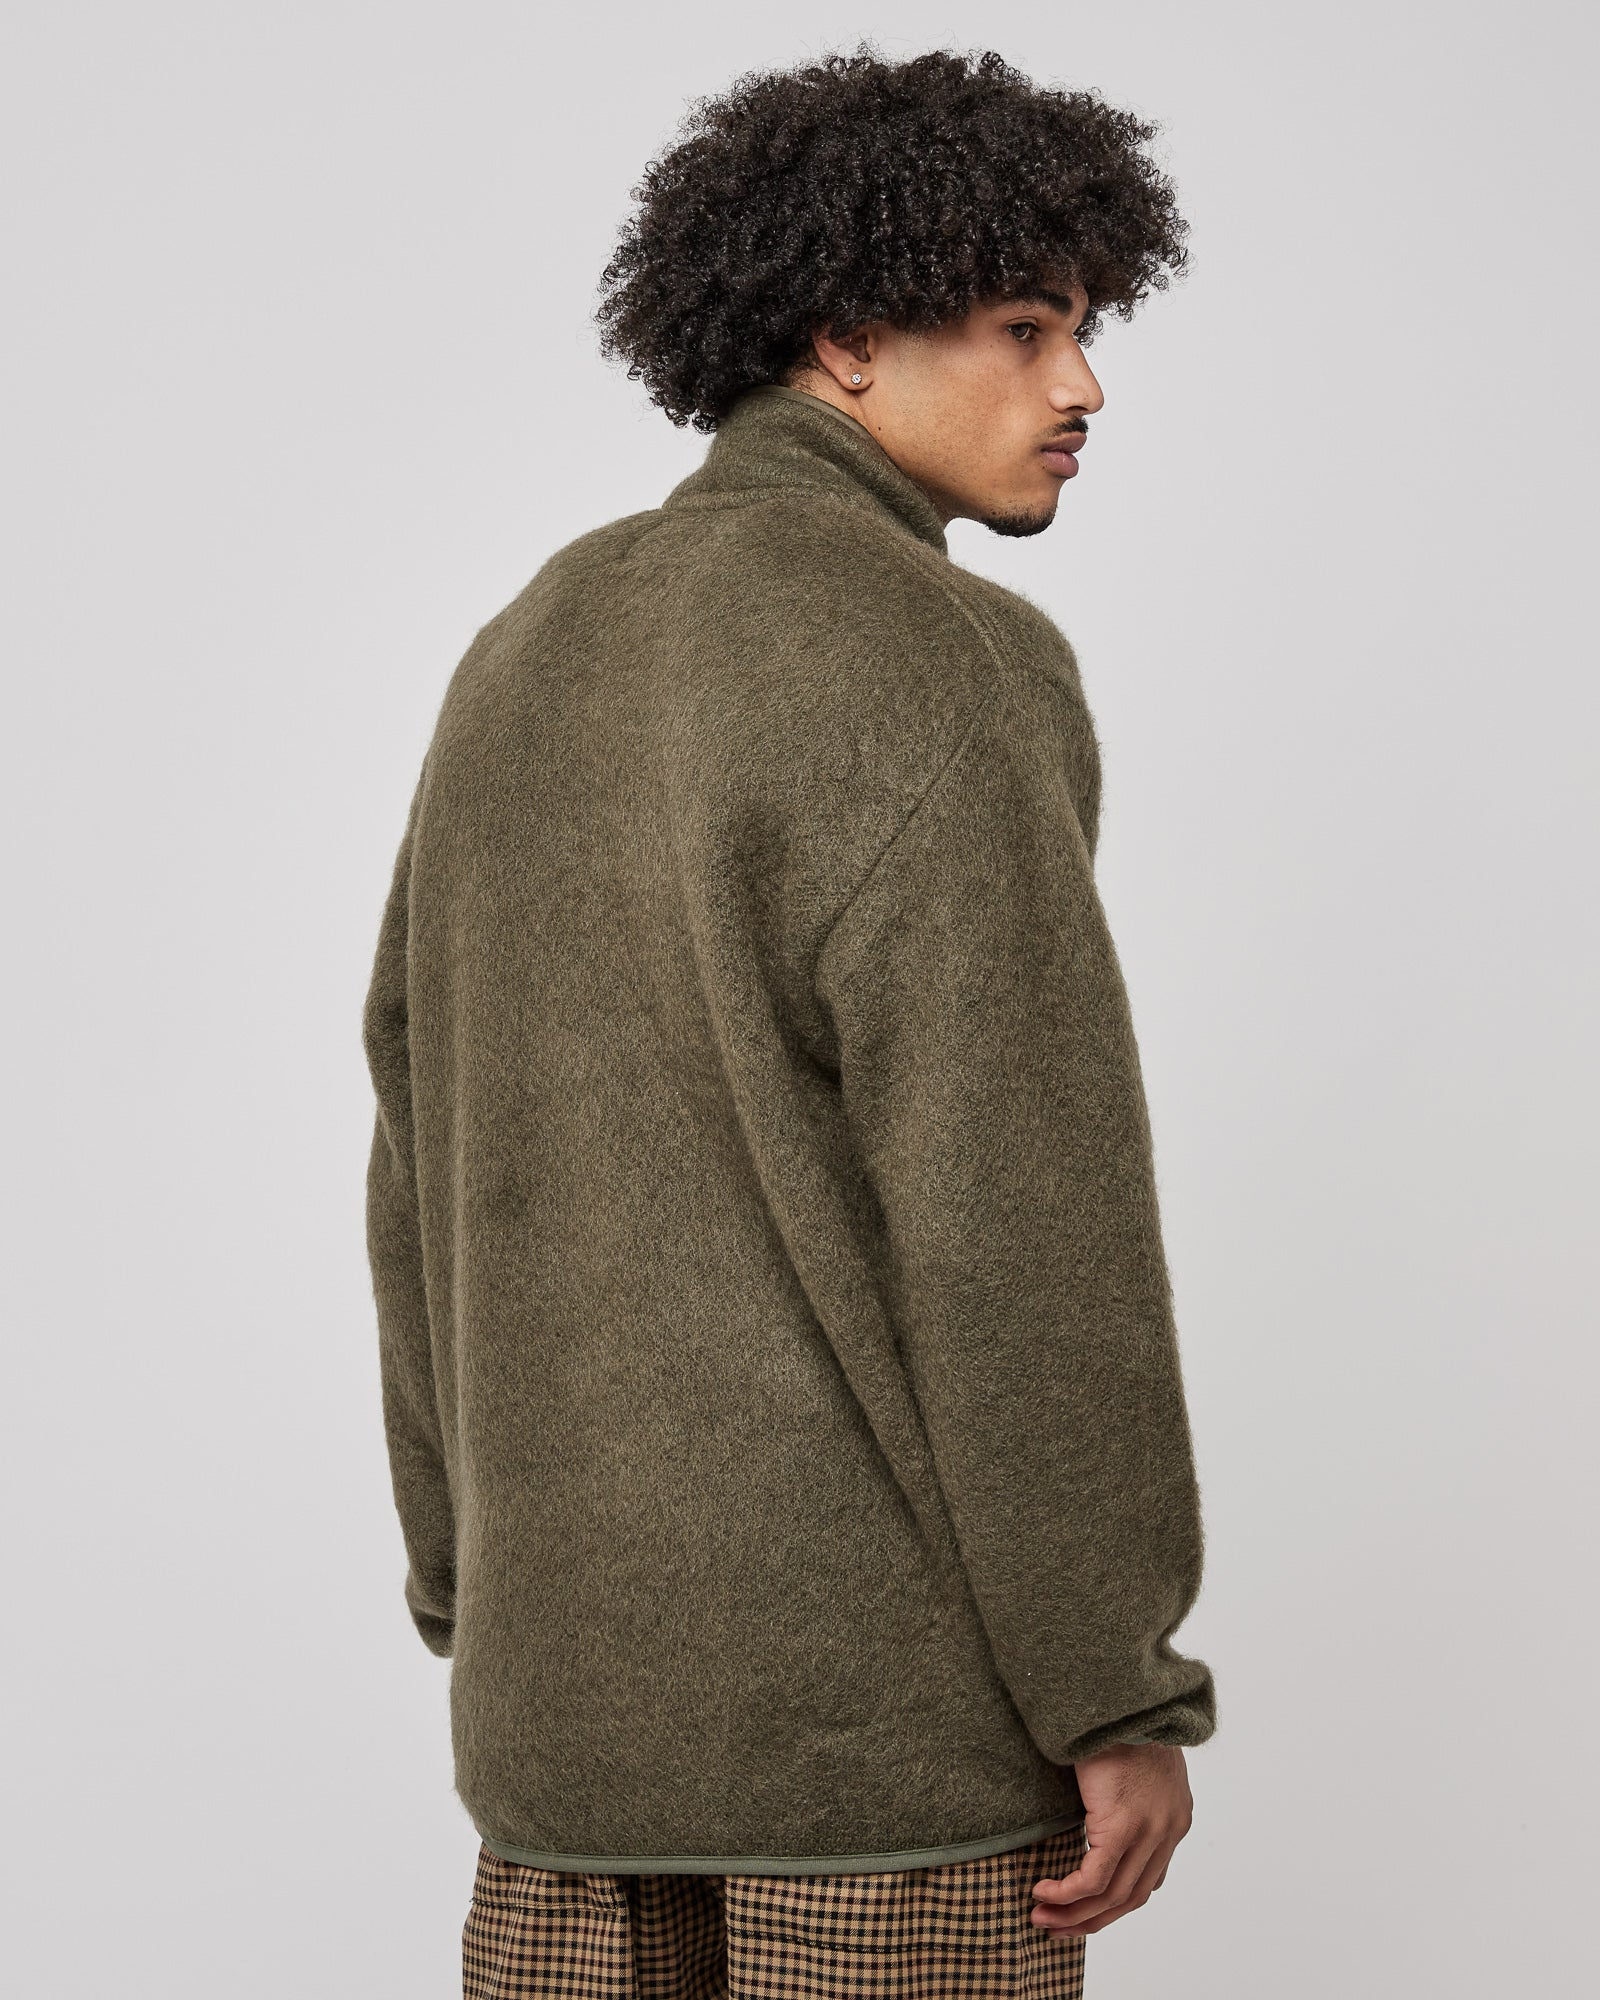 Wool Pullover Sweater in Olive